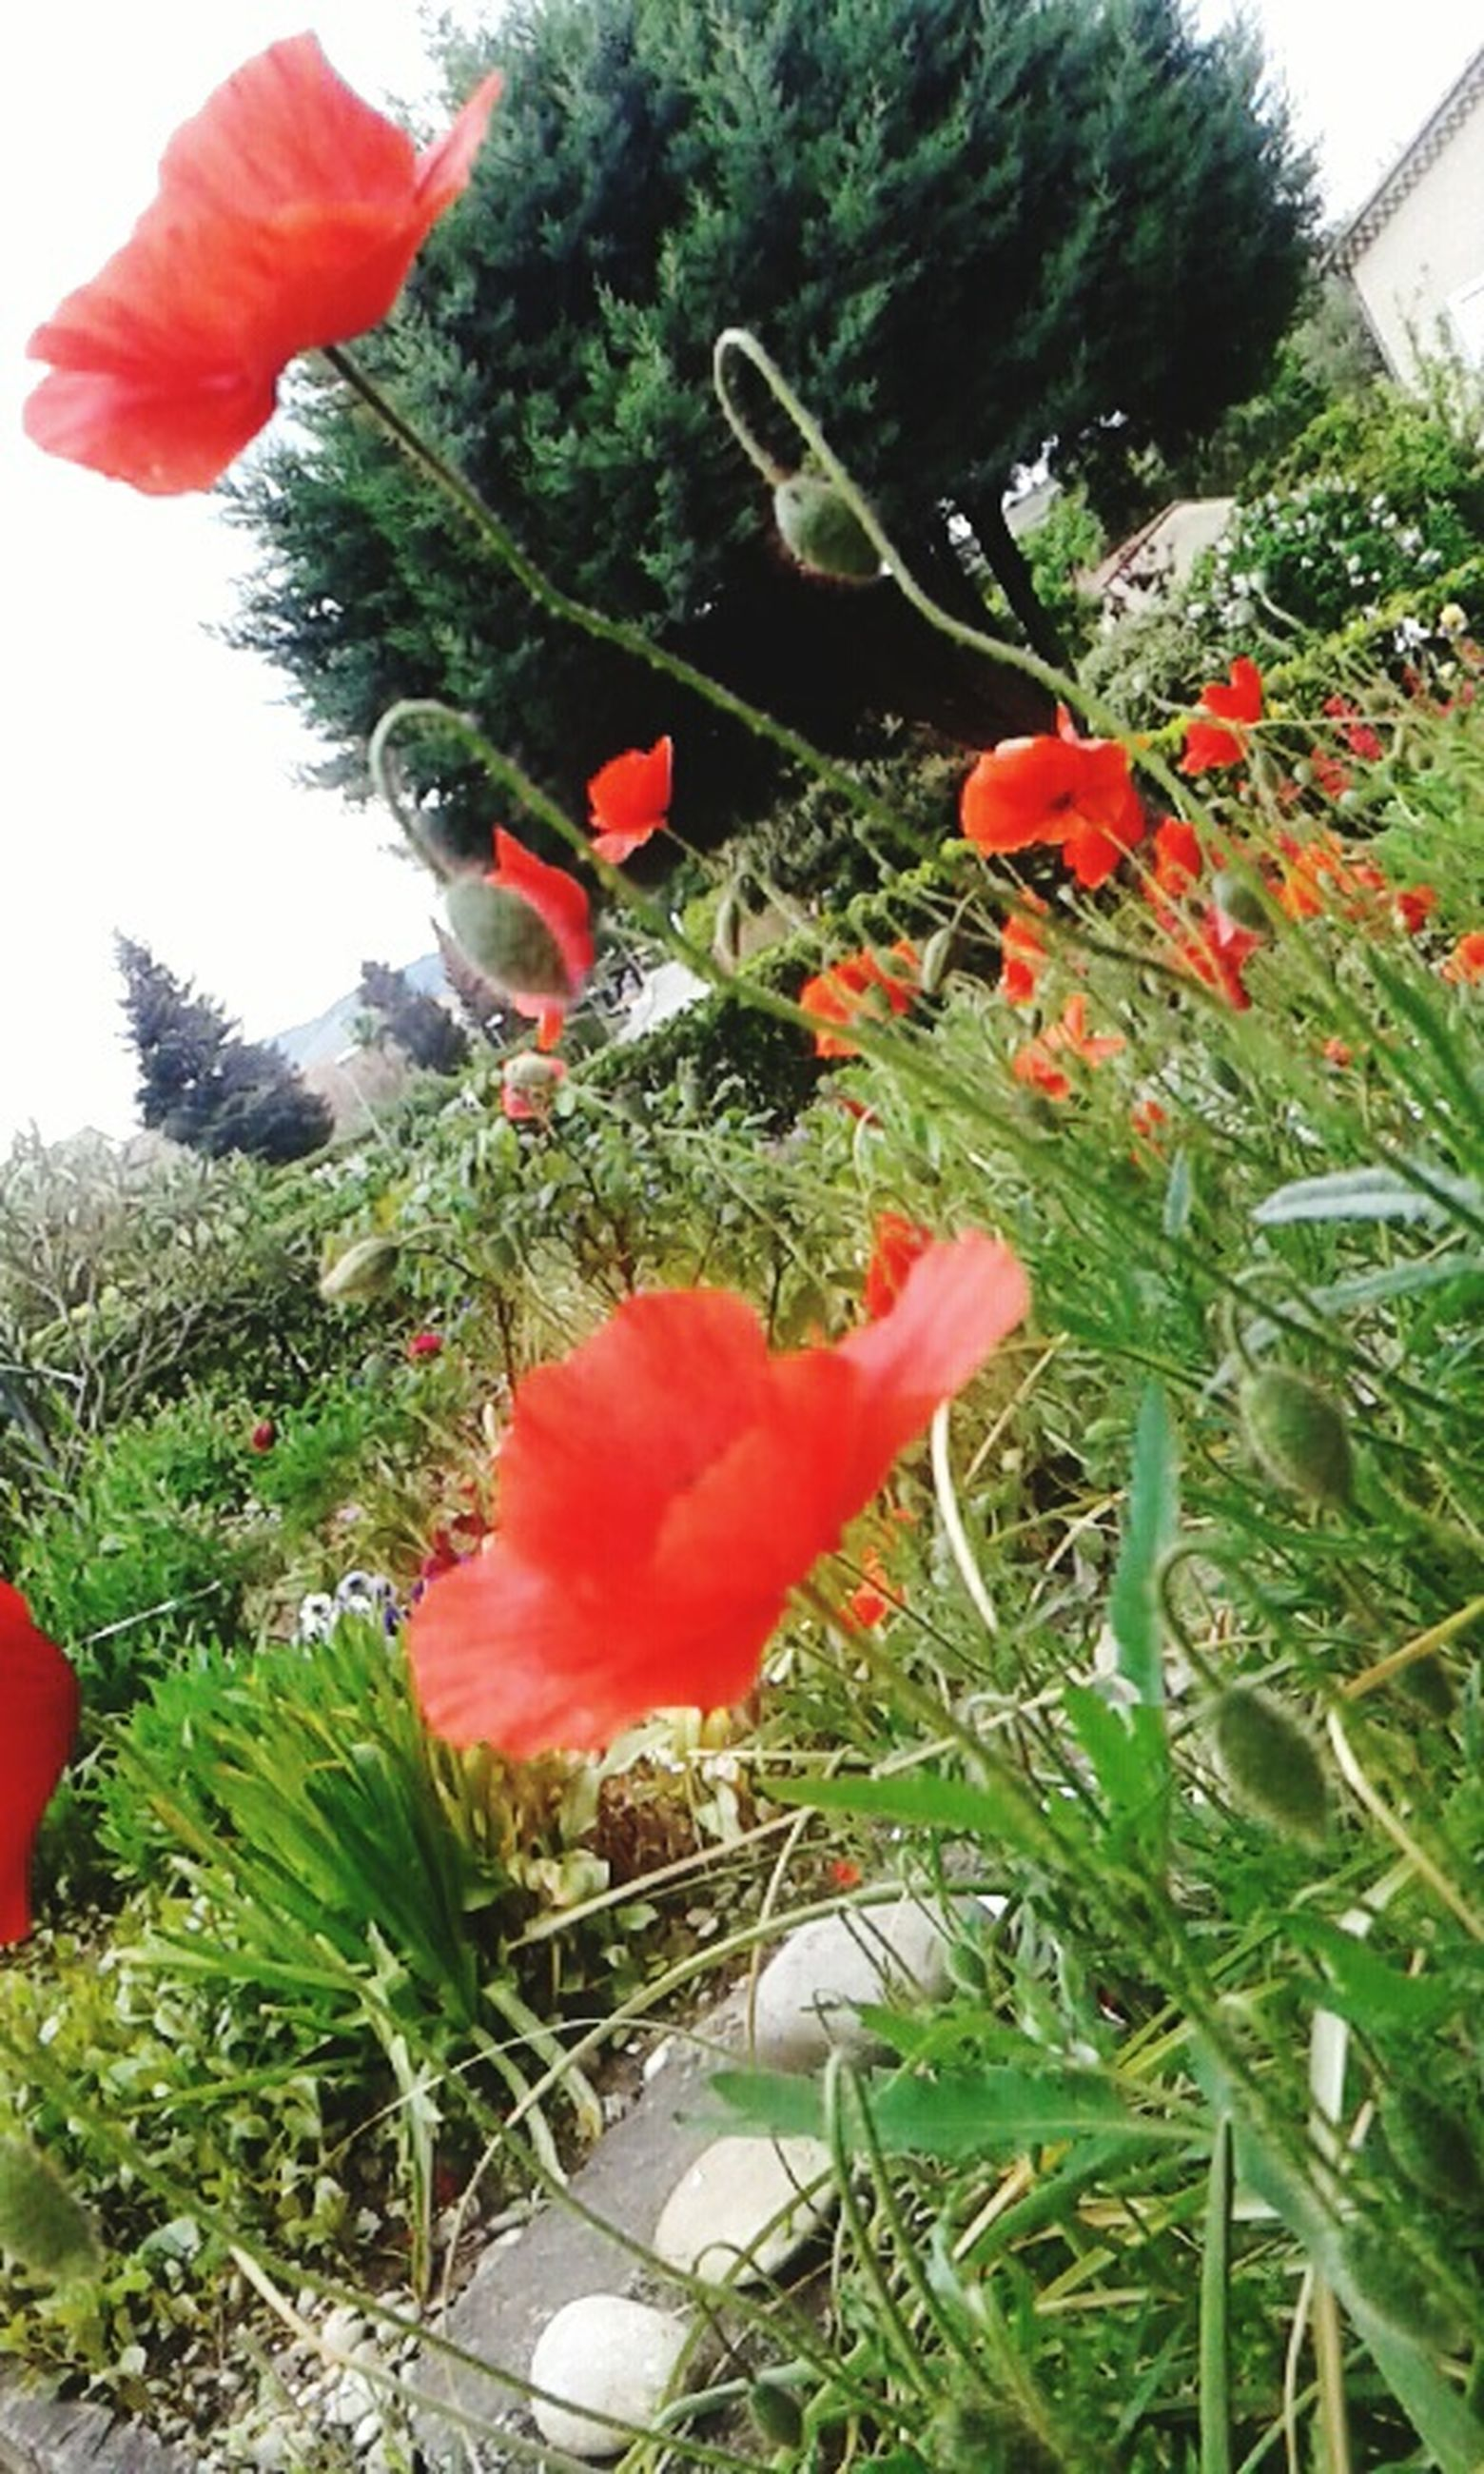 red, growth, flower, plant, freshness, petal, green color, beauty in nature, fragility, nature, blooming, flower head, low angle view, day, tree, leaf, poppy, outdoors, no people, close-up